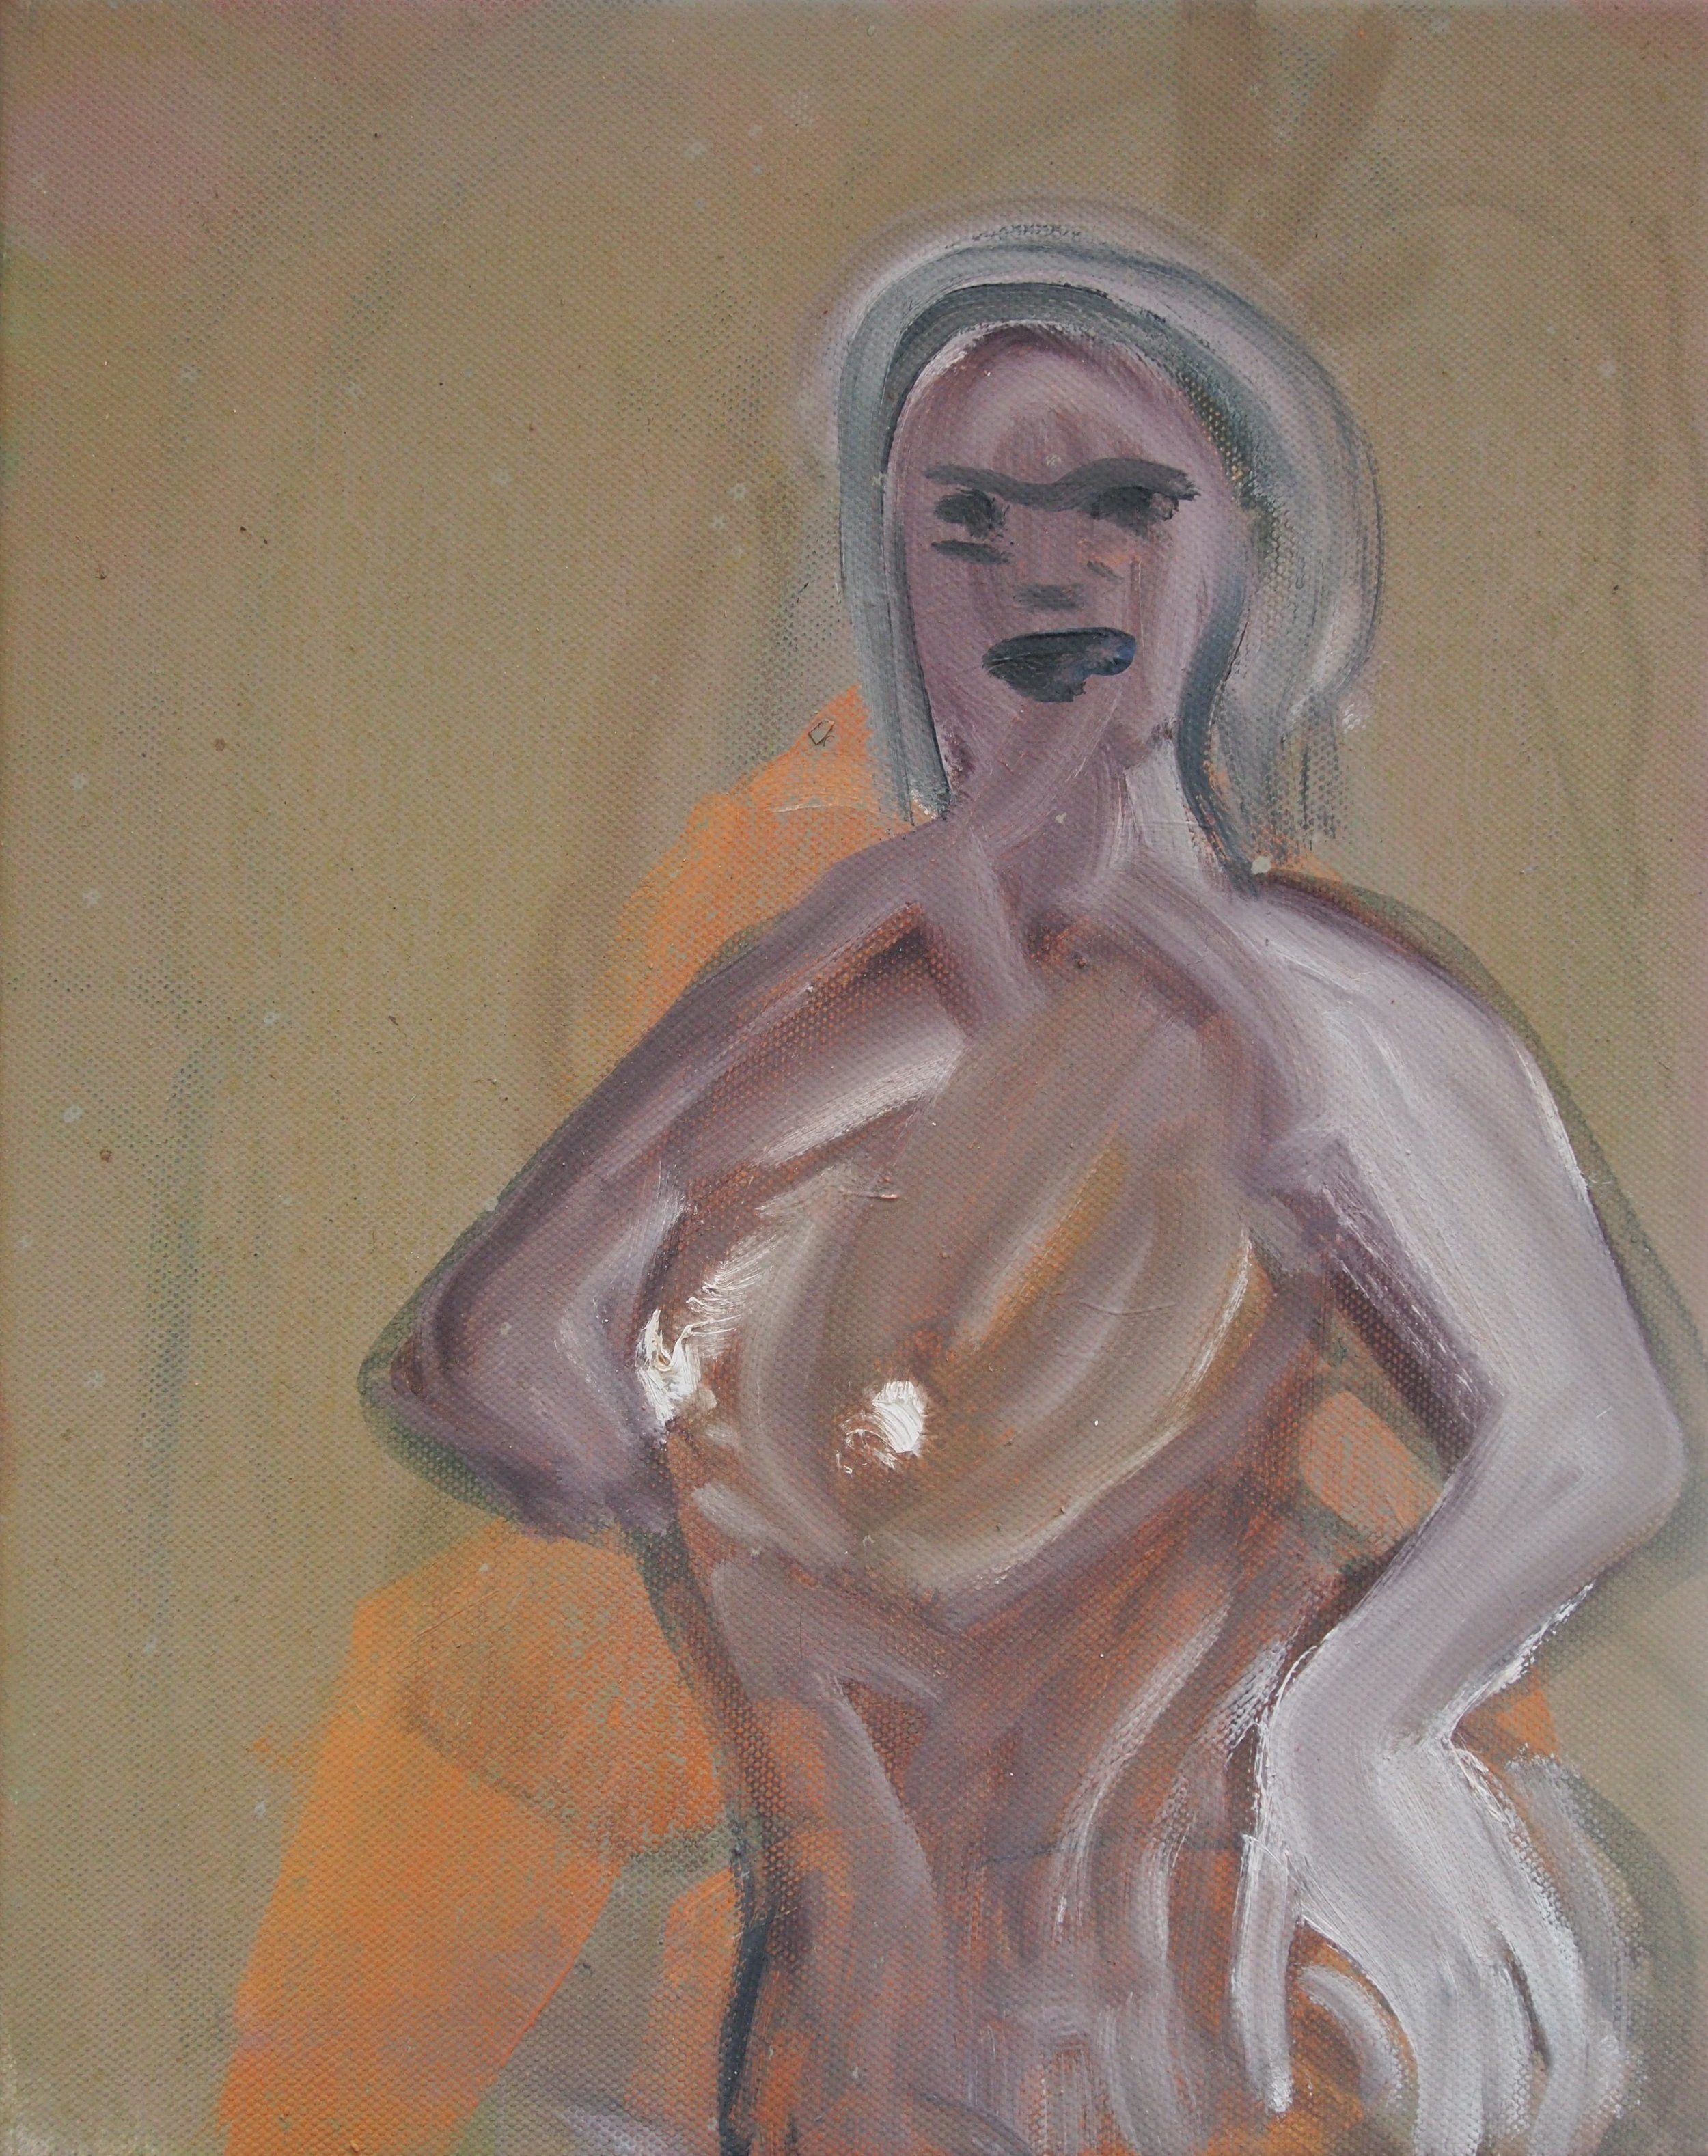 Get Ur Freak On   Oil on canvas  35 x 27.5 cm